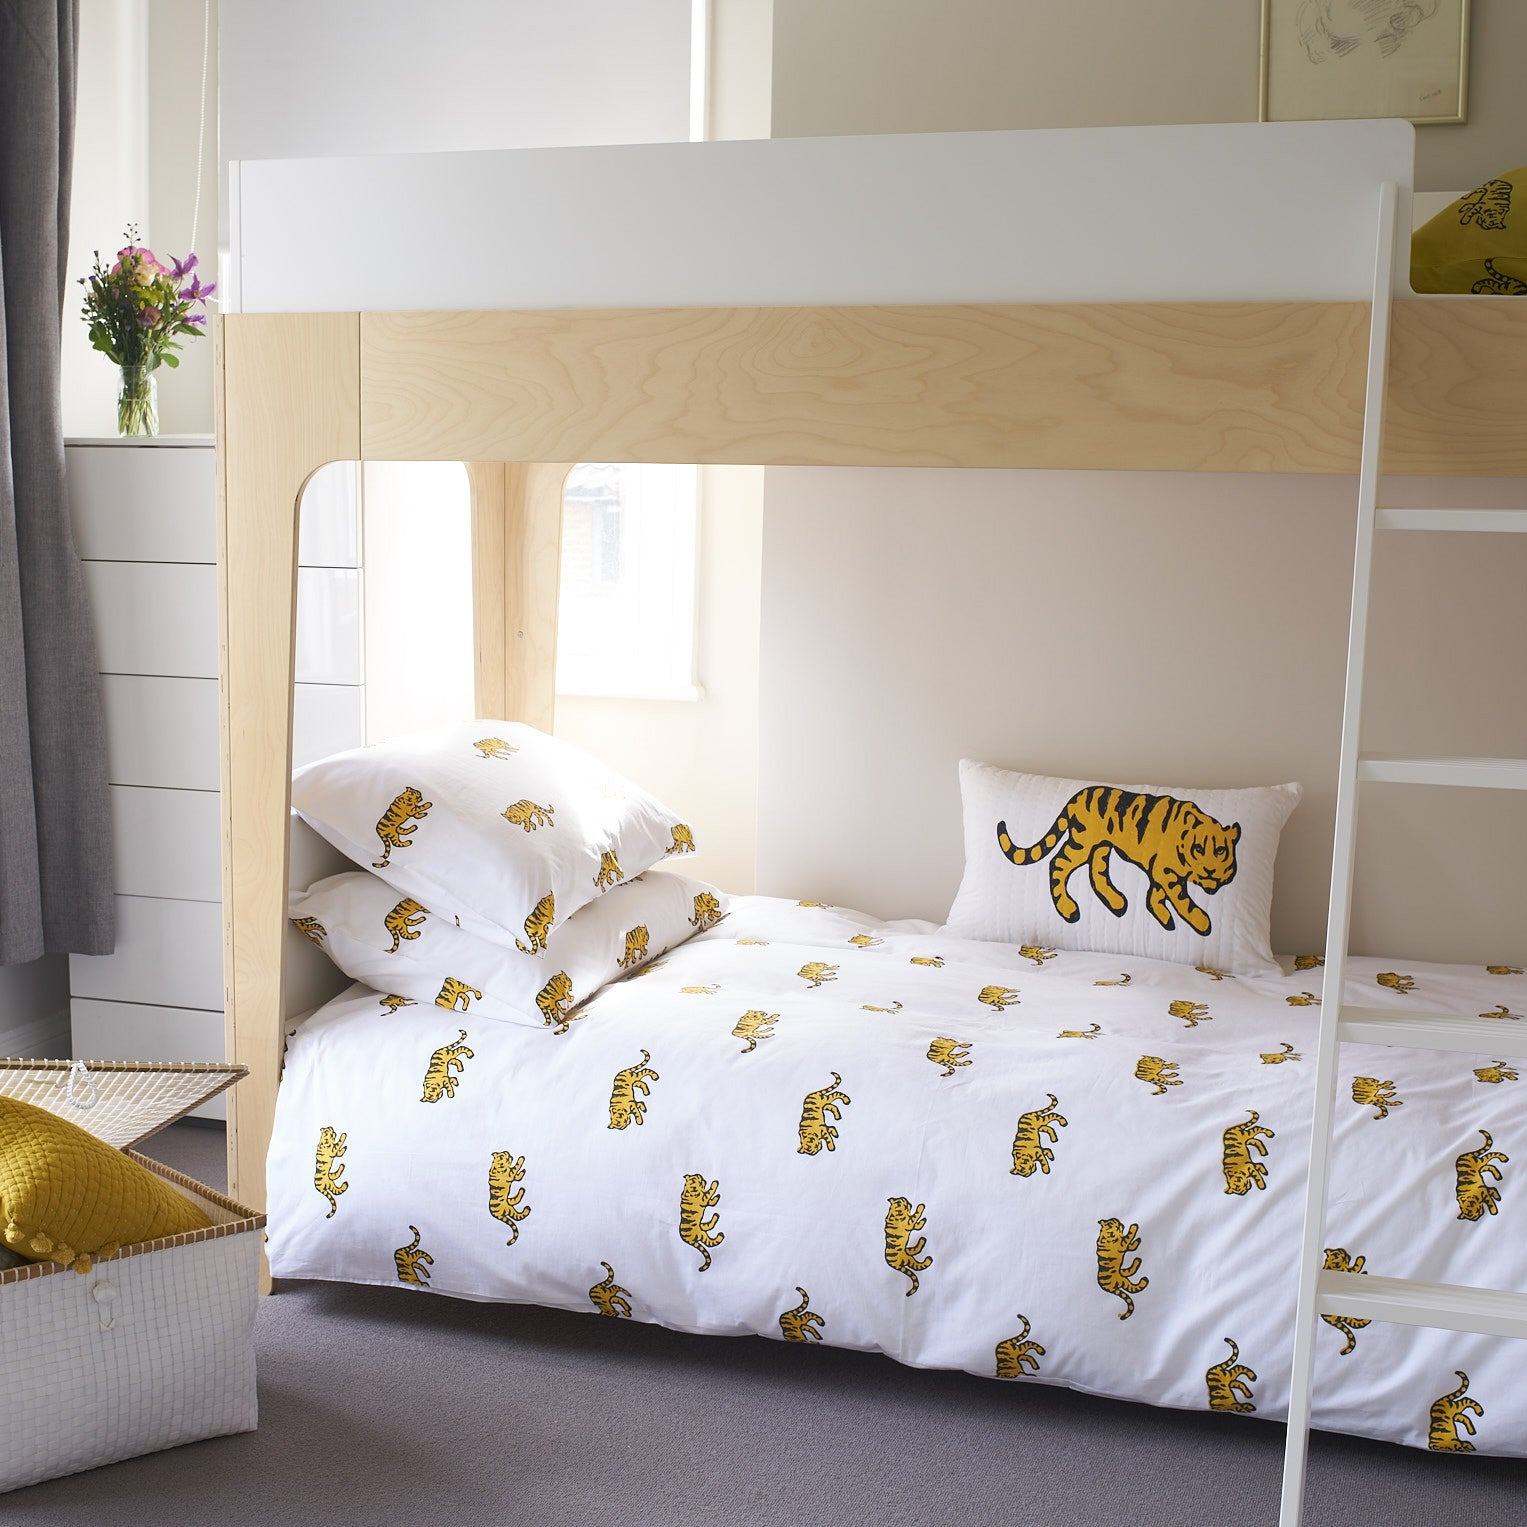 Tiger bedding set